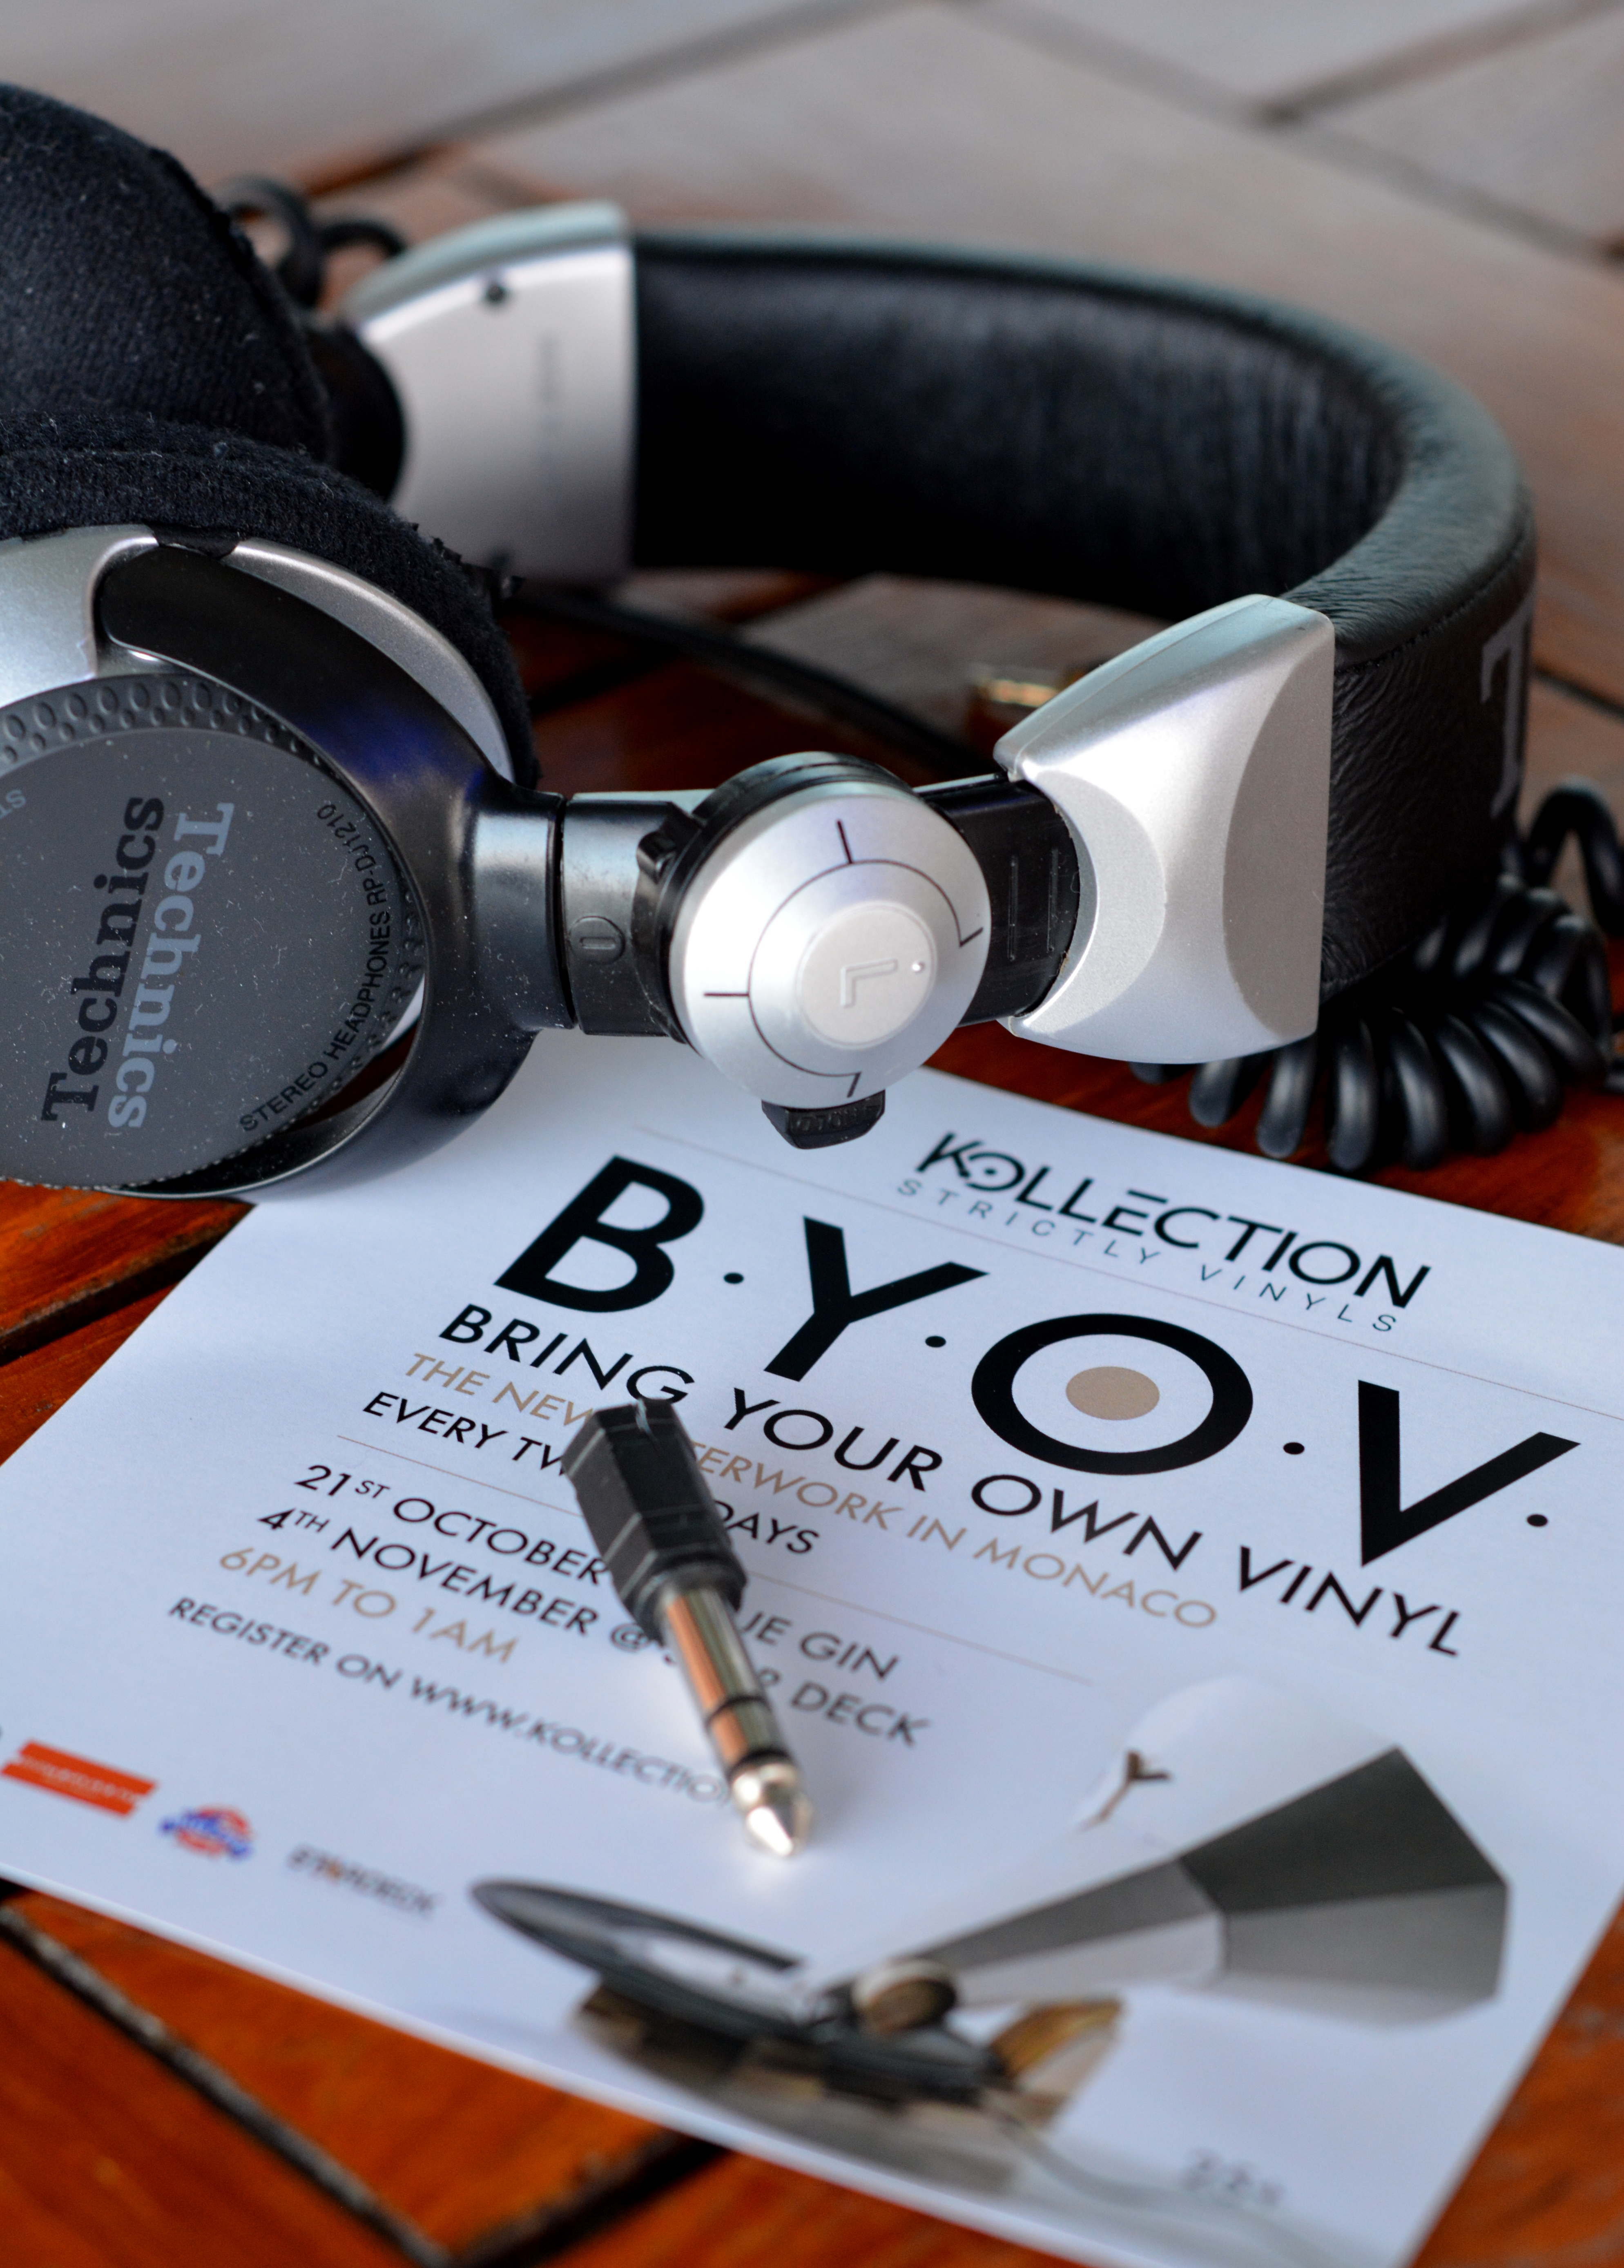 Kollection Afterwork - Bring your own vinyl